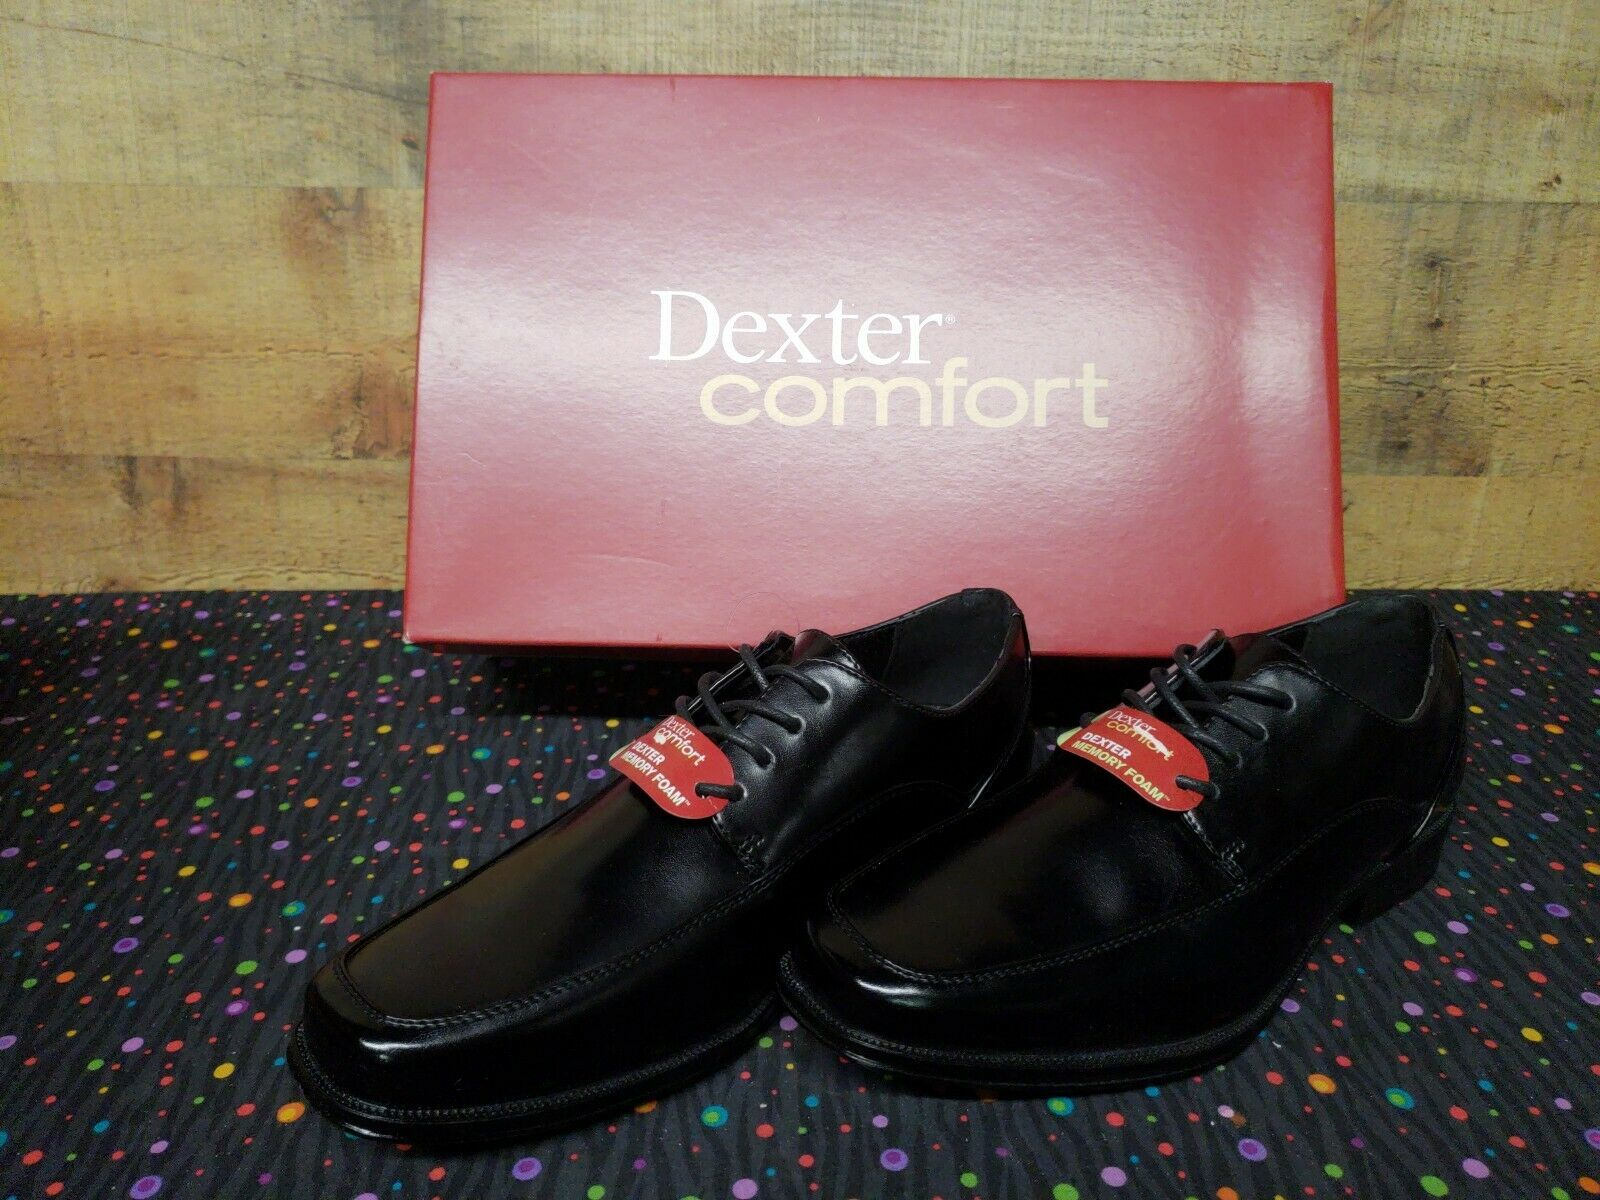 Dexter Comfort 164611 CROSBY OX Oxford Dress Mens shoes Size 10W New Box